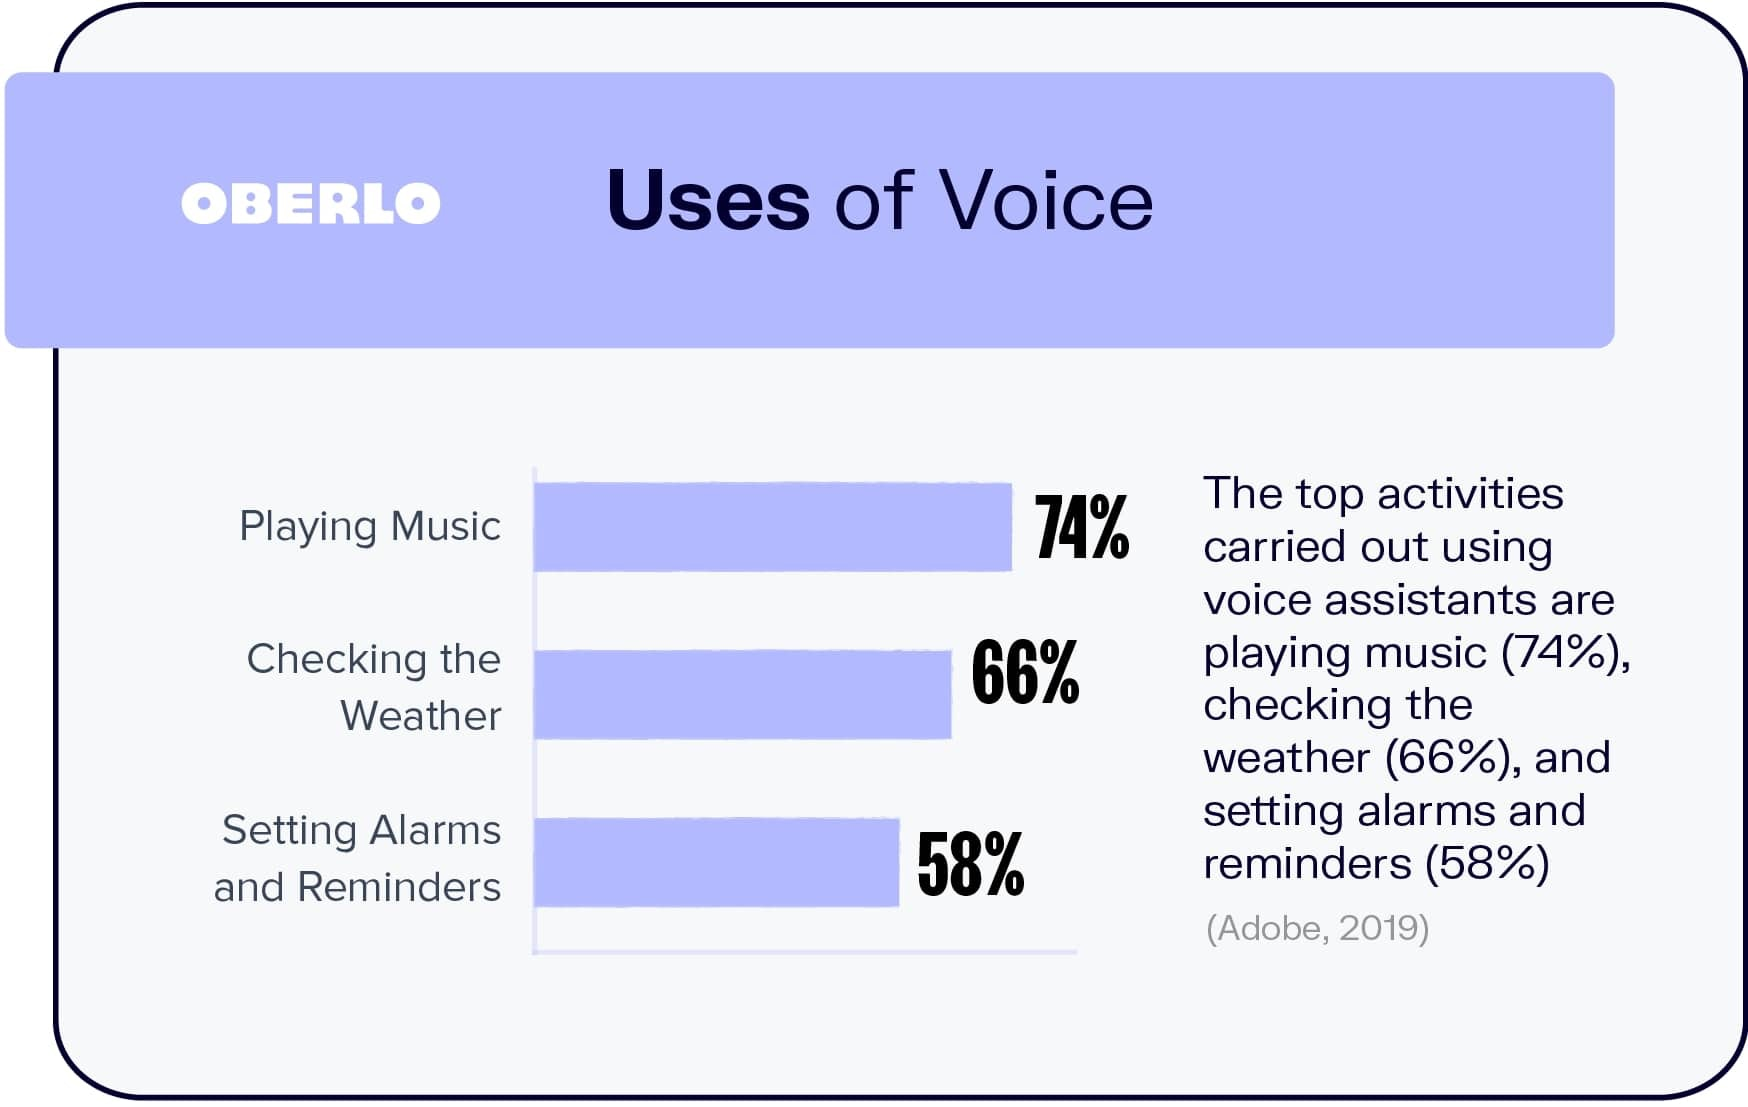 Uses of Voice